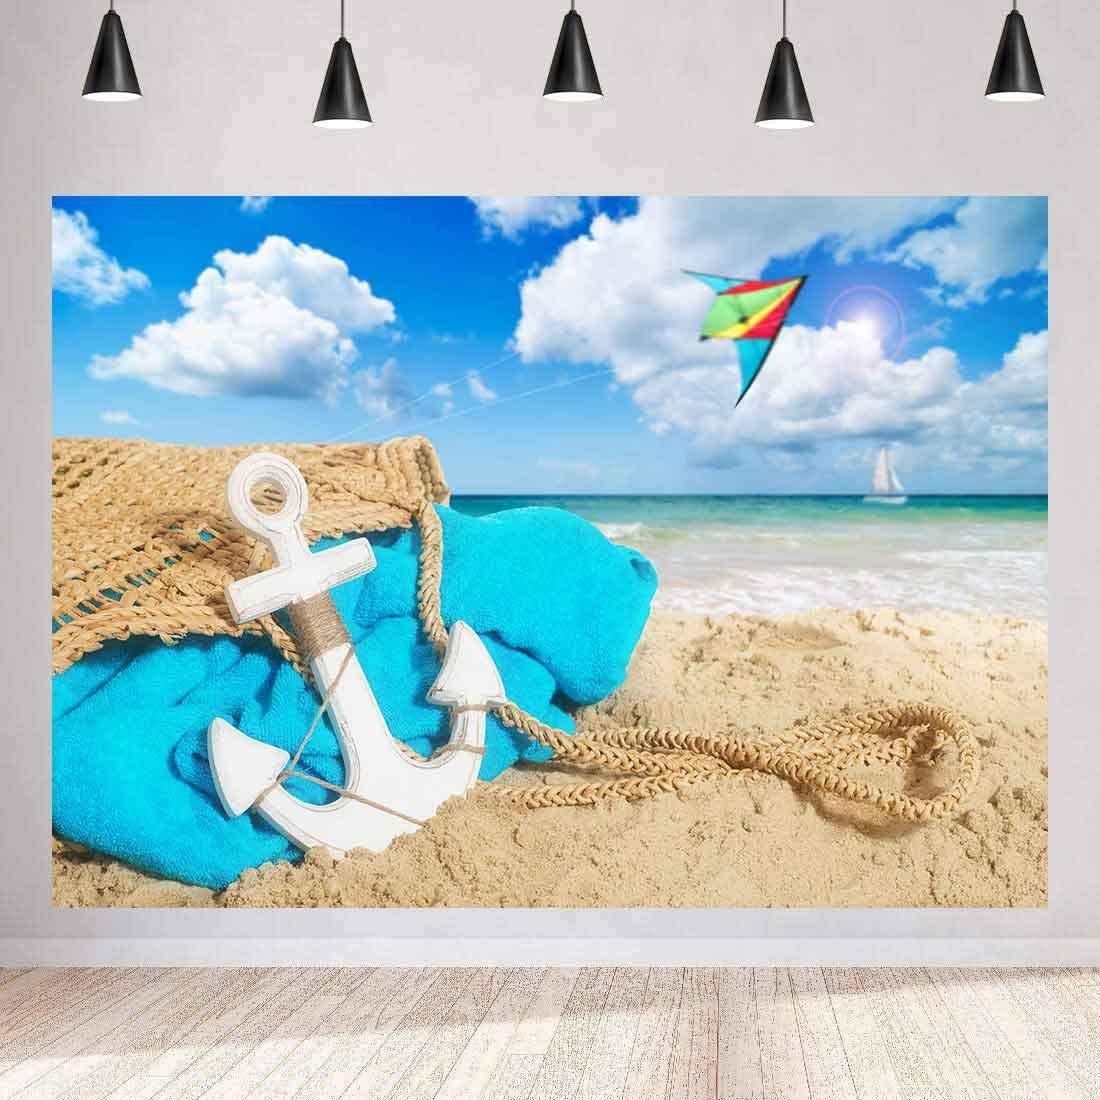 Summer Beach Backdrop Seaside Scenery Photography Background MEETSIOY 7x5ft Themed Party Photo Booth YouTube Backdrop MT379